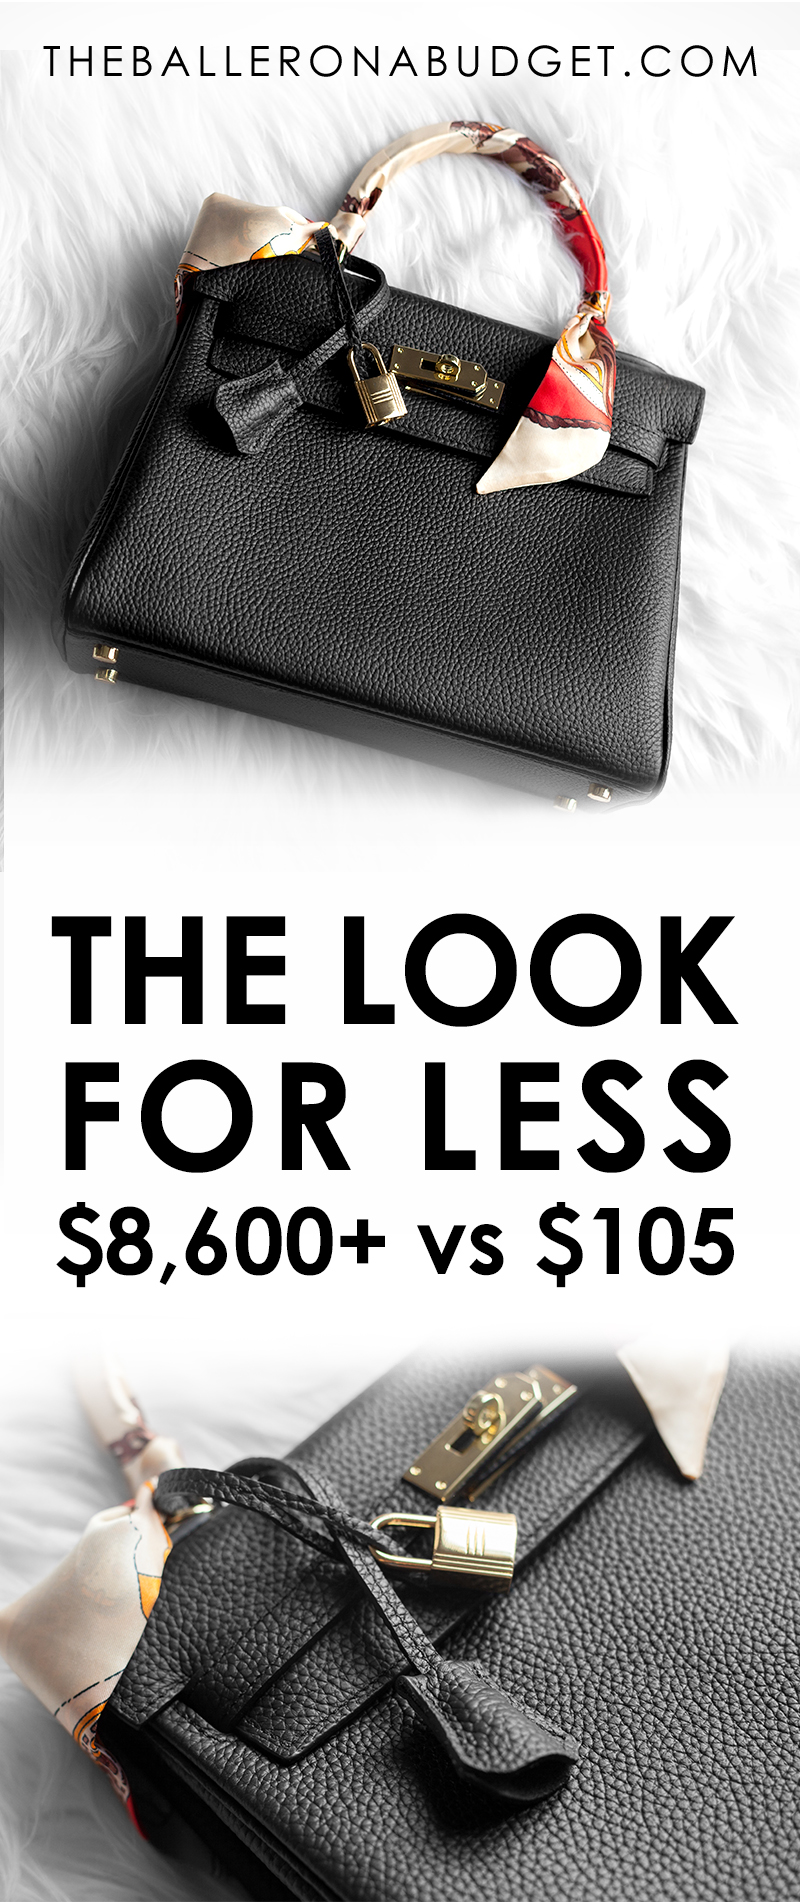 Looking for a bag that's similar to the $8,600+ Hermes Kelly Bag without the expensive price tag? This bag is made from genuine leather and is only $105! Check out the review with lots of detailed photos. - www.theballeronabudget